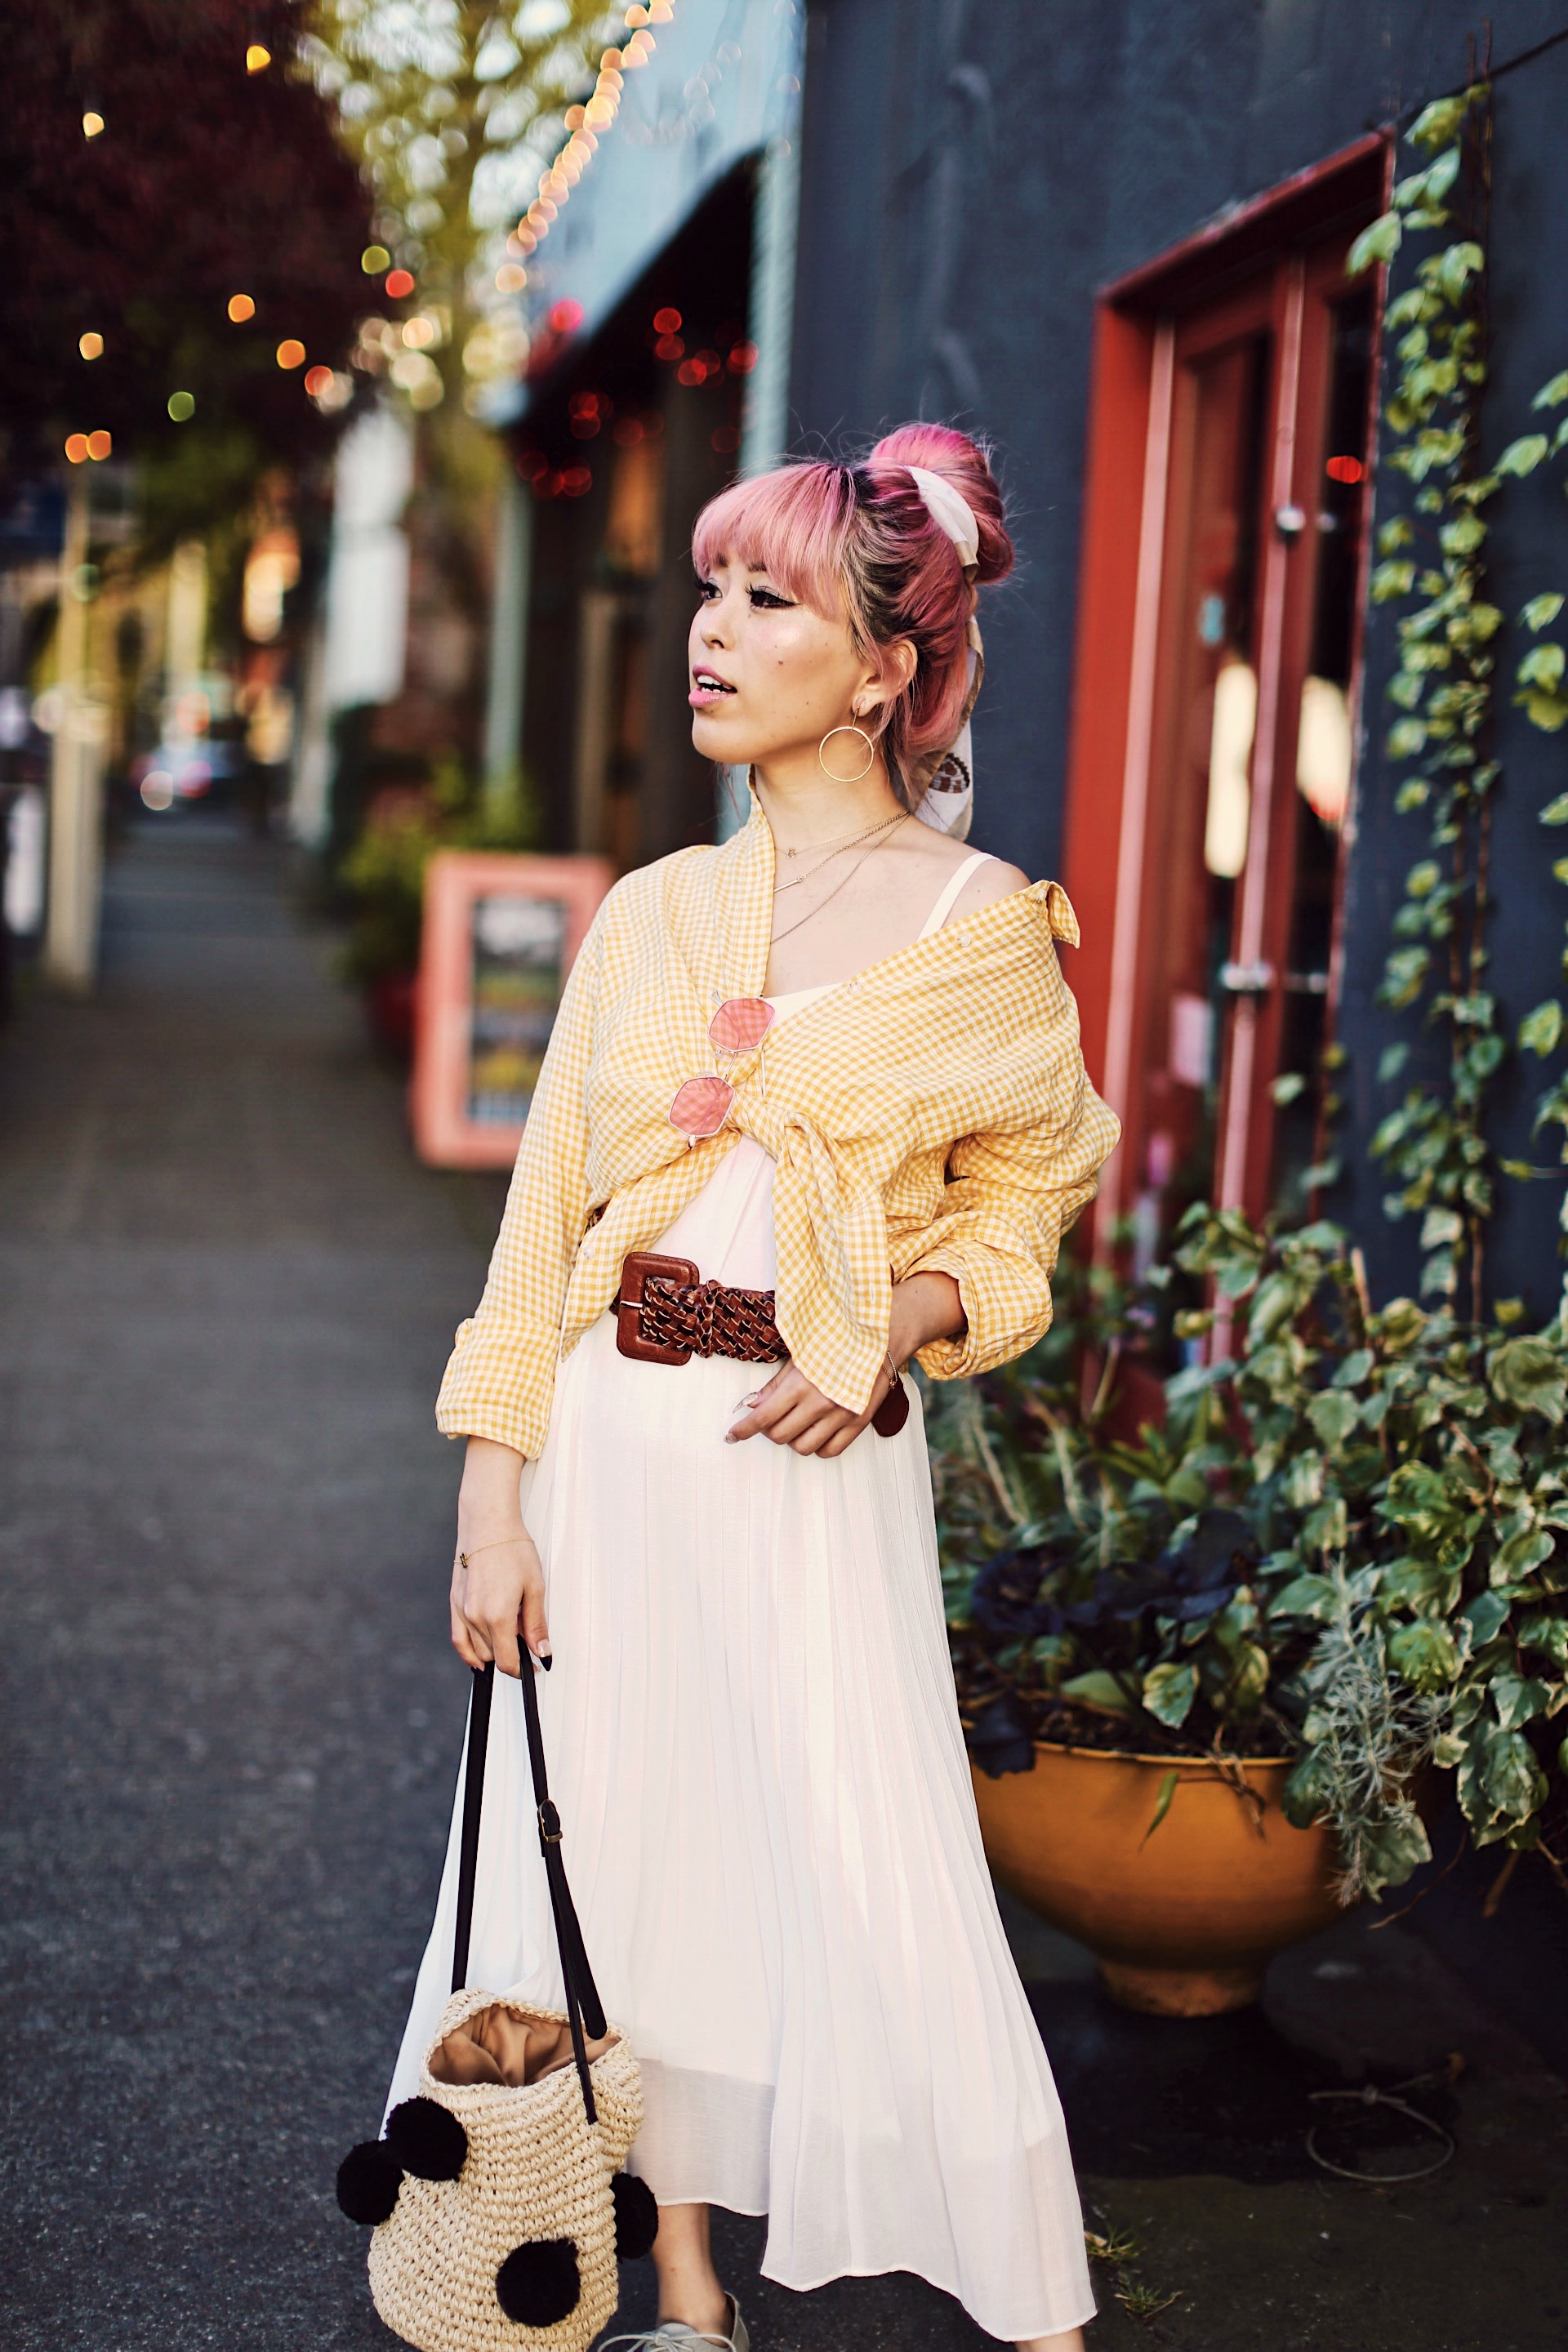 Uniqlo yellow Linen gingham shirt-Uniqlo White pleated chiffon midi skirt-Uniqlo Airism brat-pink tinted sunglasses ZERO UV-She in Pom pom Straw bucket bag-Vintage scarf bun hair style-Steve Madden Belt-Jane and the shoe denim oxford platforms-Aika's Love Closet-seattle fashion style blogger-Japanese-pink hair-smiling-spring fashion 4